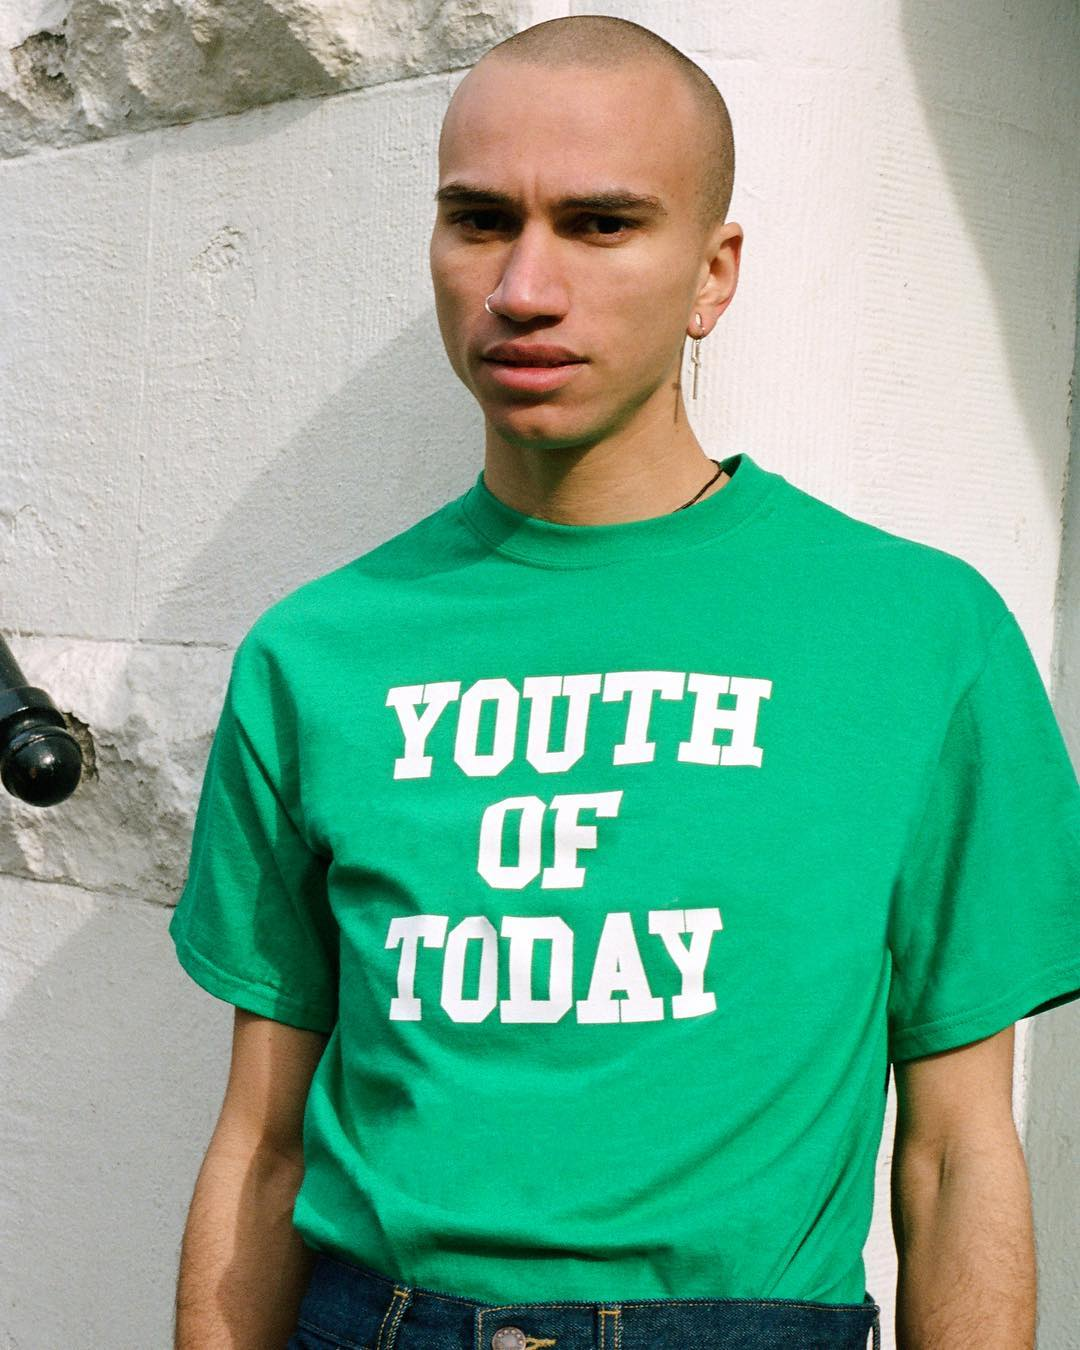 Youth of Today x NOAH Collaboration Announcement hardcore punk band new york streetwear rock & roll release info